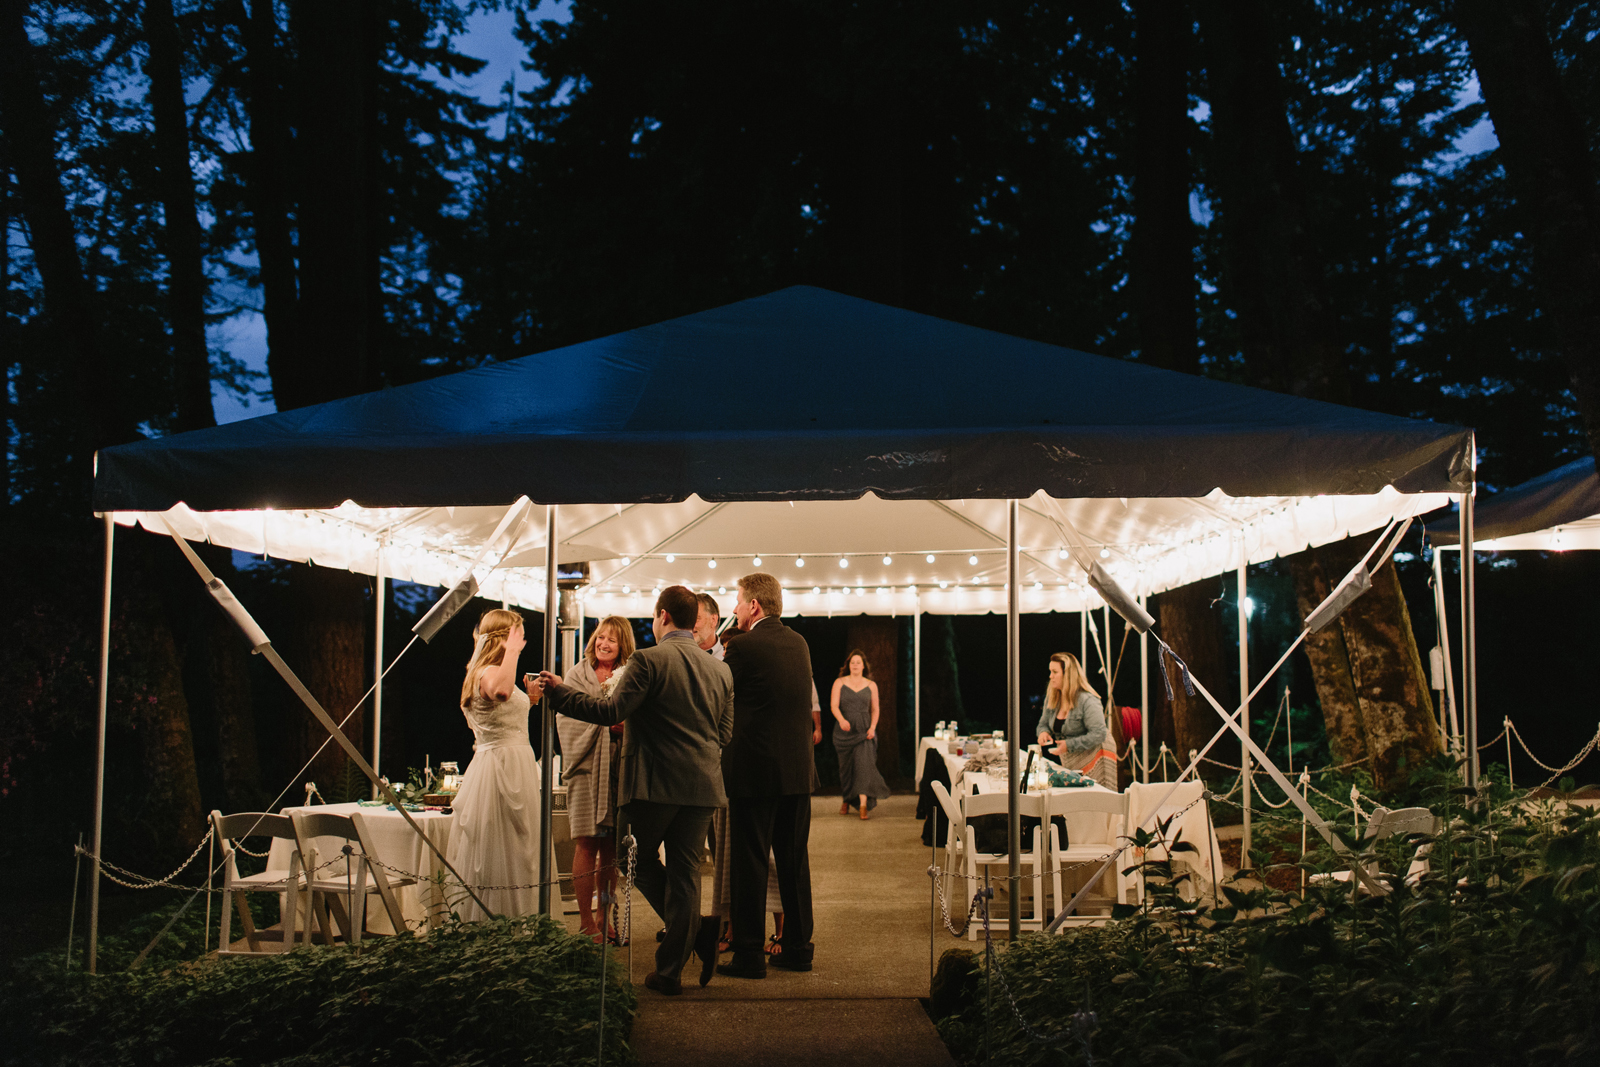 guests chat with the bride and groom during a wedding reception at Bridal Veil Lakes in Oregon